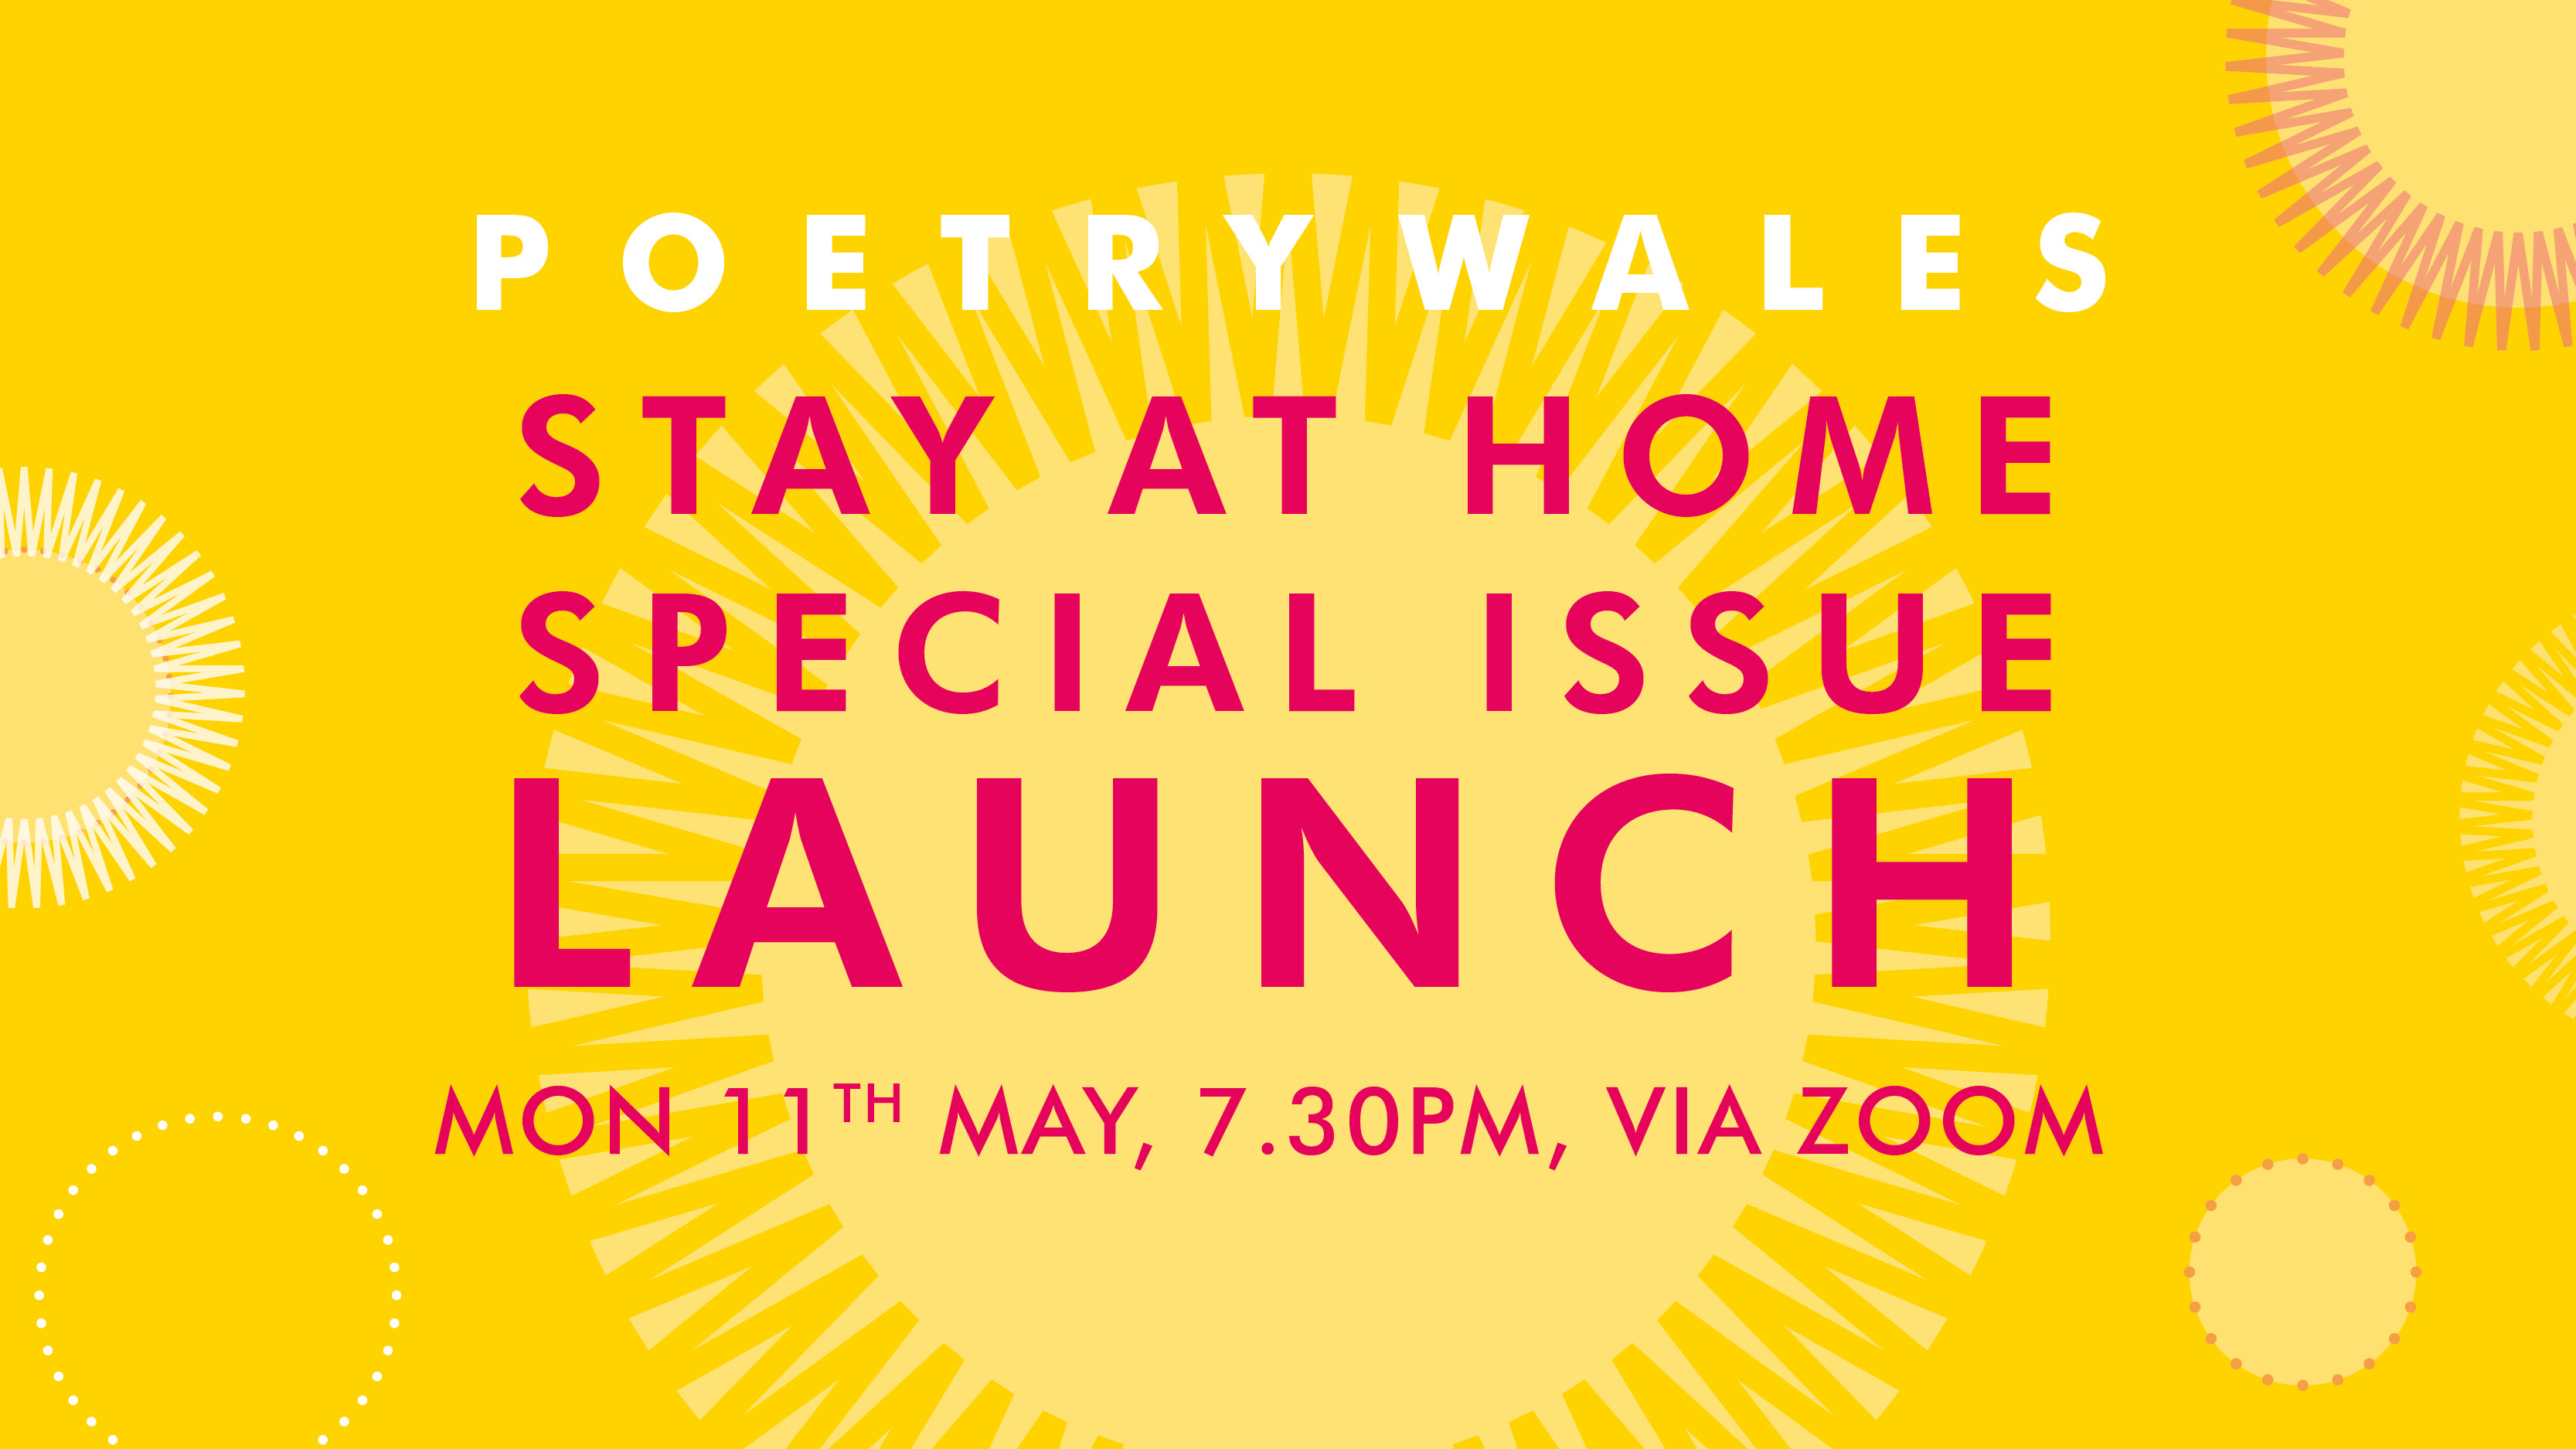 Poetry Wales Stay at home Special Issue Launch Monday 11th May 7.30pm via Zoom